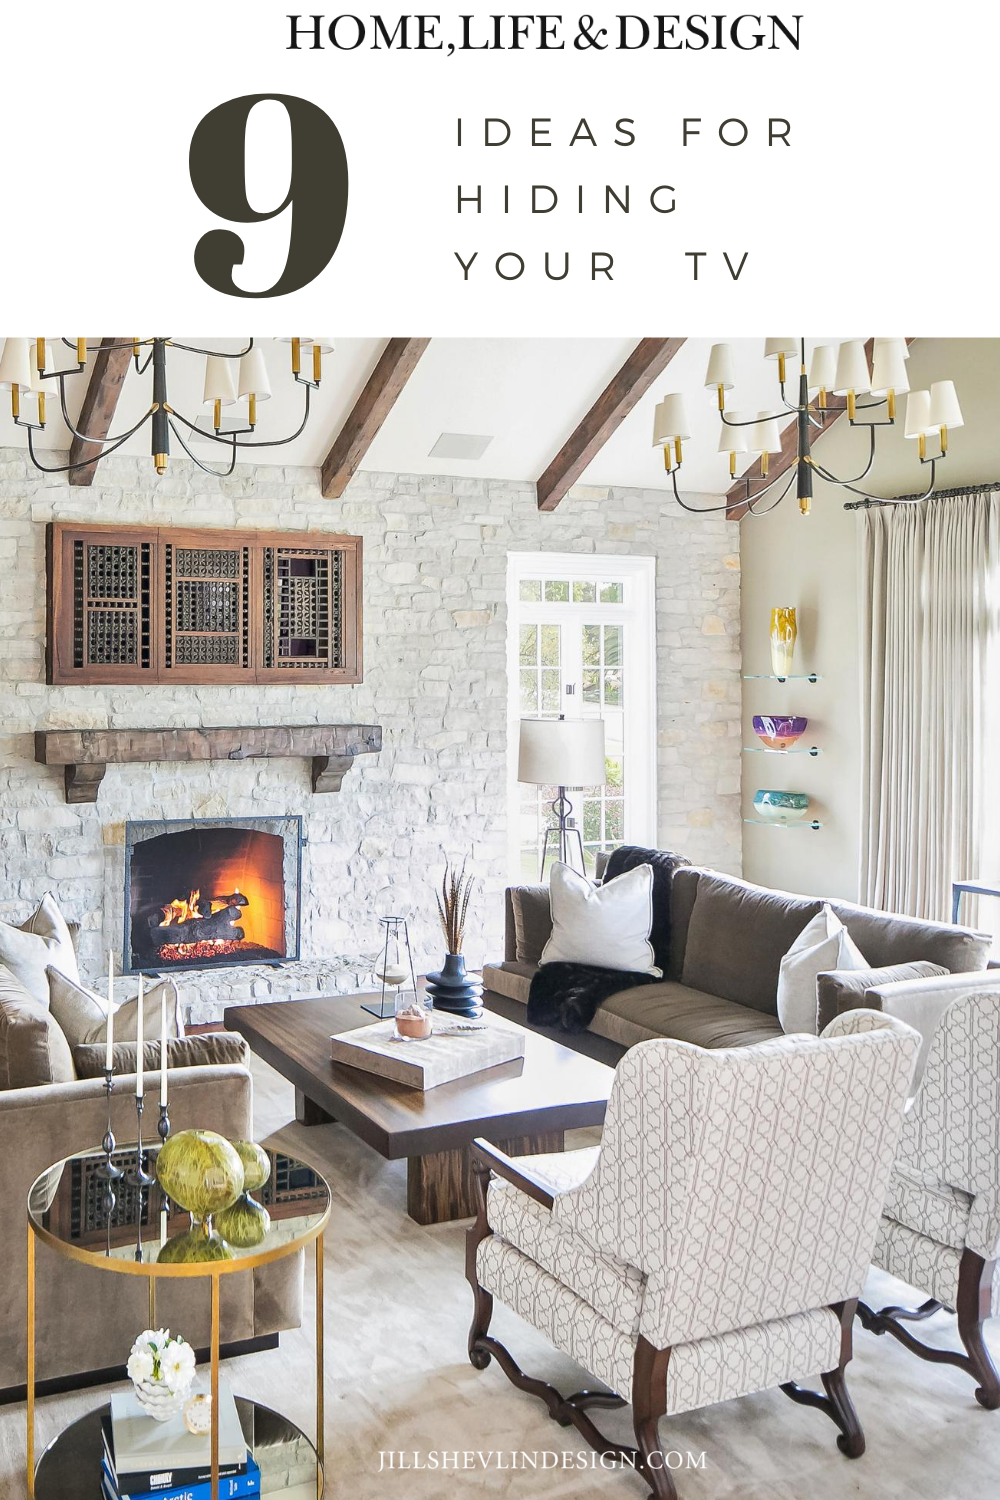 9 Ideas for Hiding Your TV in the Living Room